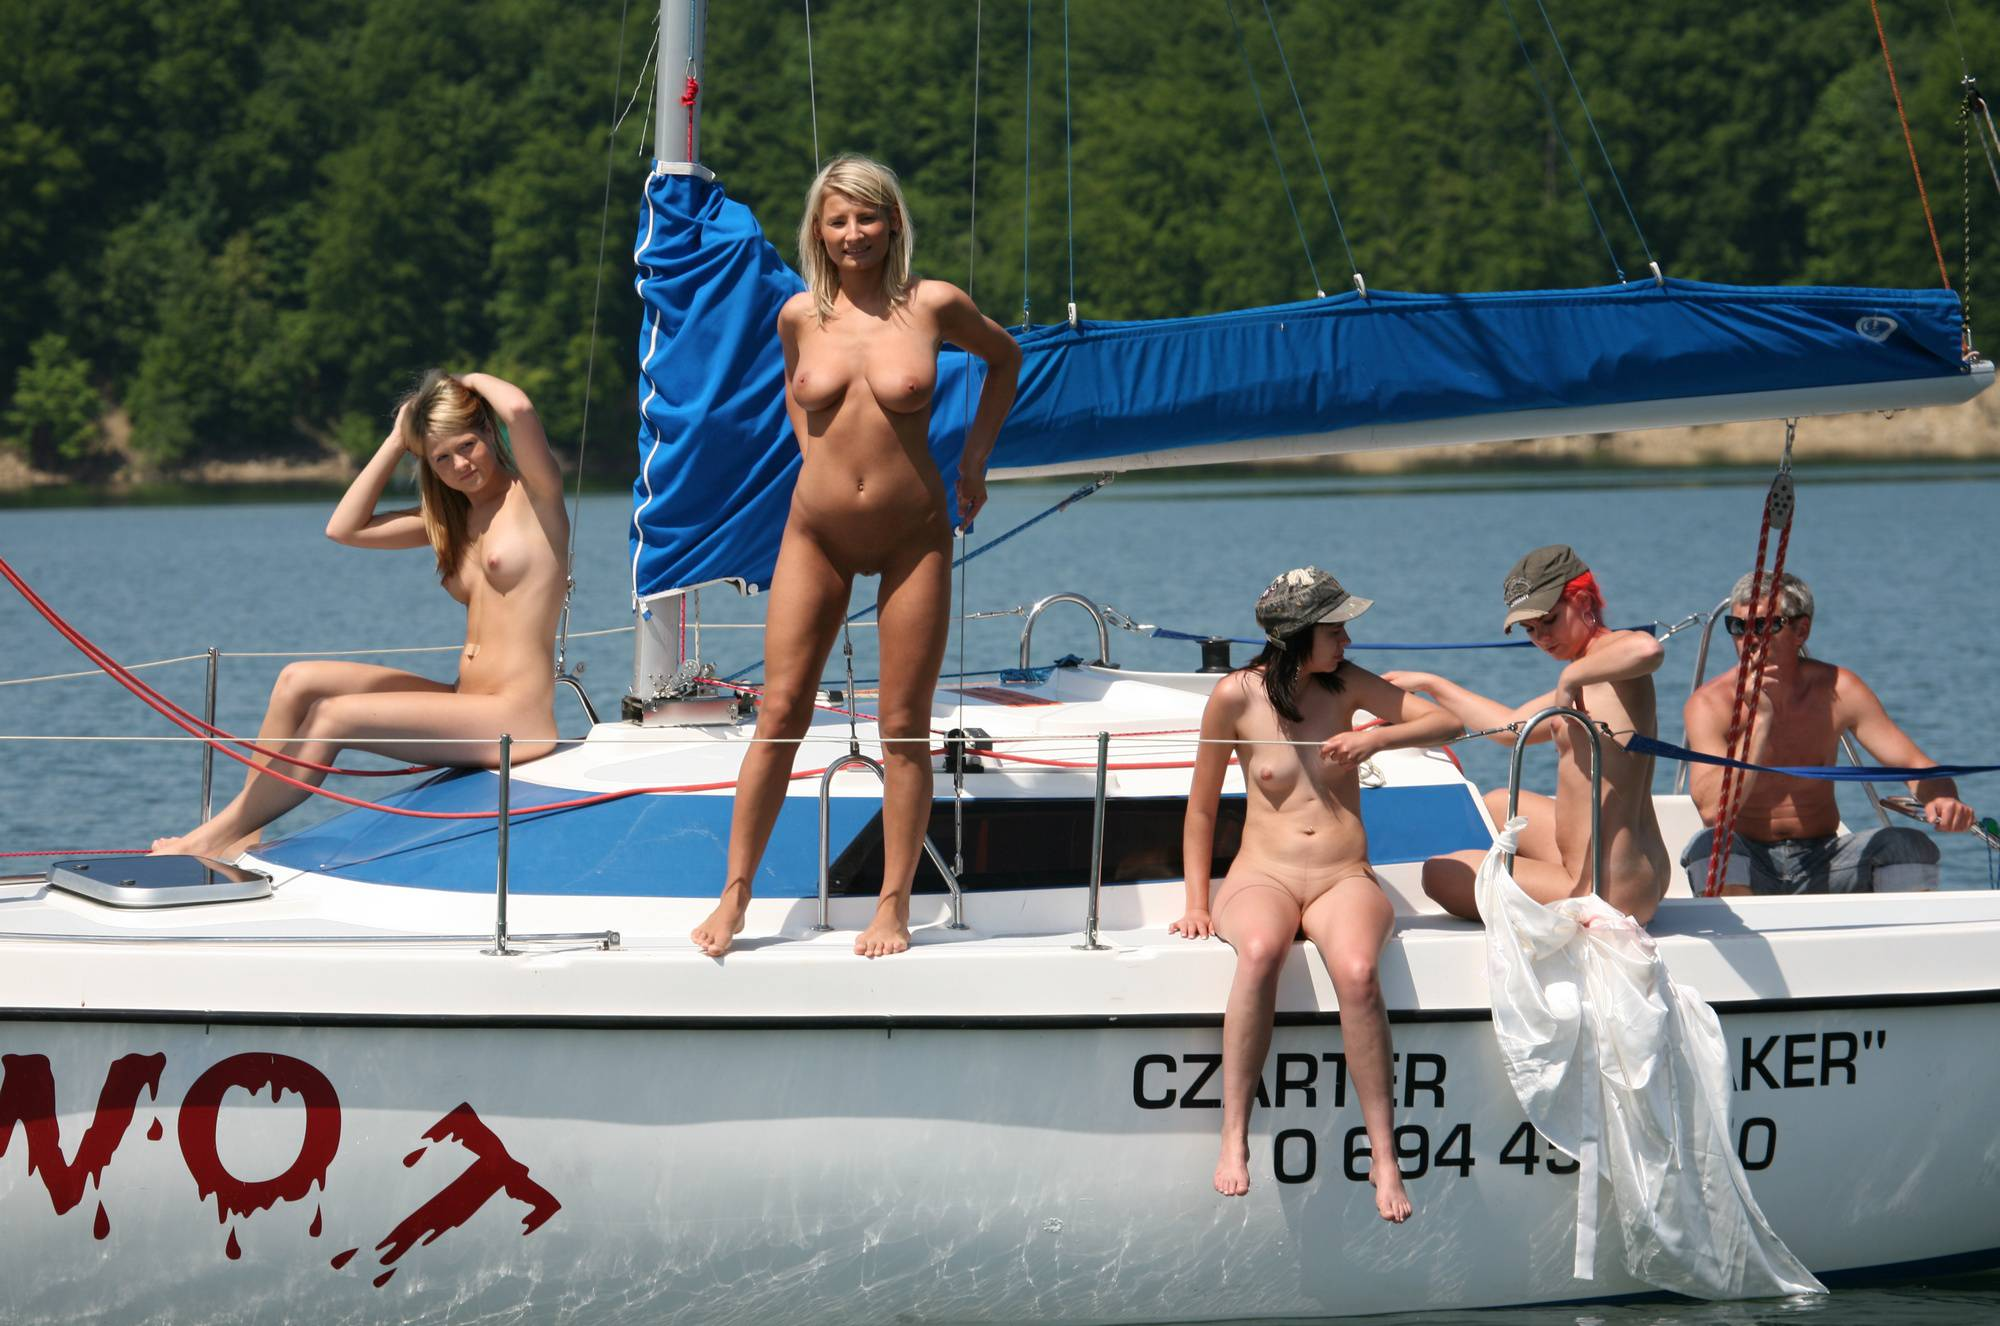 Nudist Gallery Seaworthy Piwot Yacht - 2